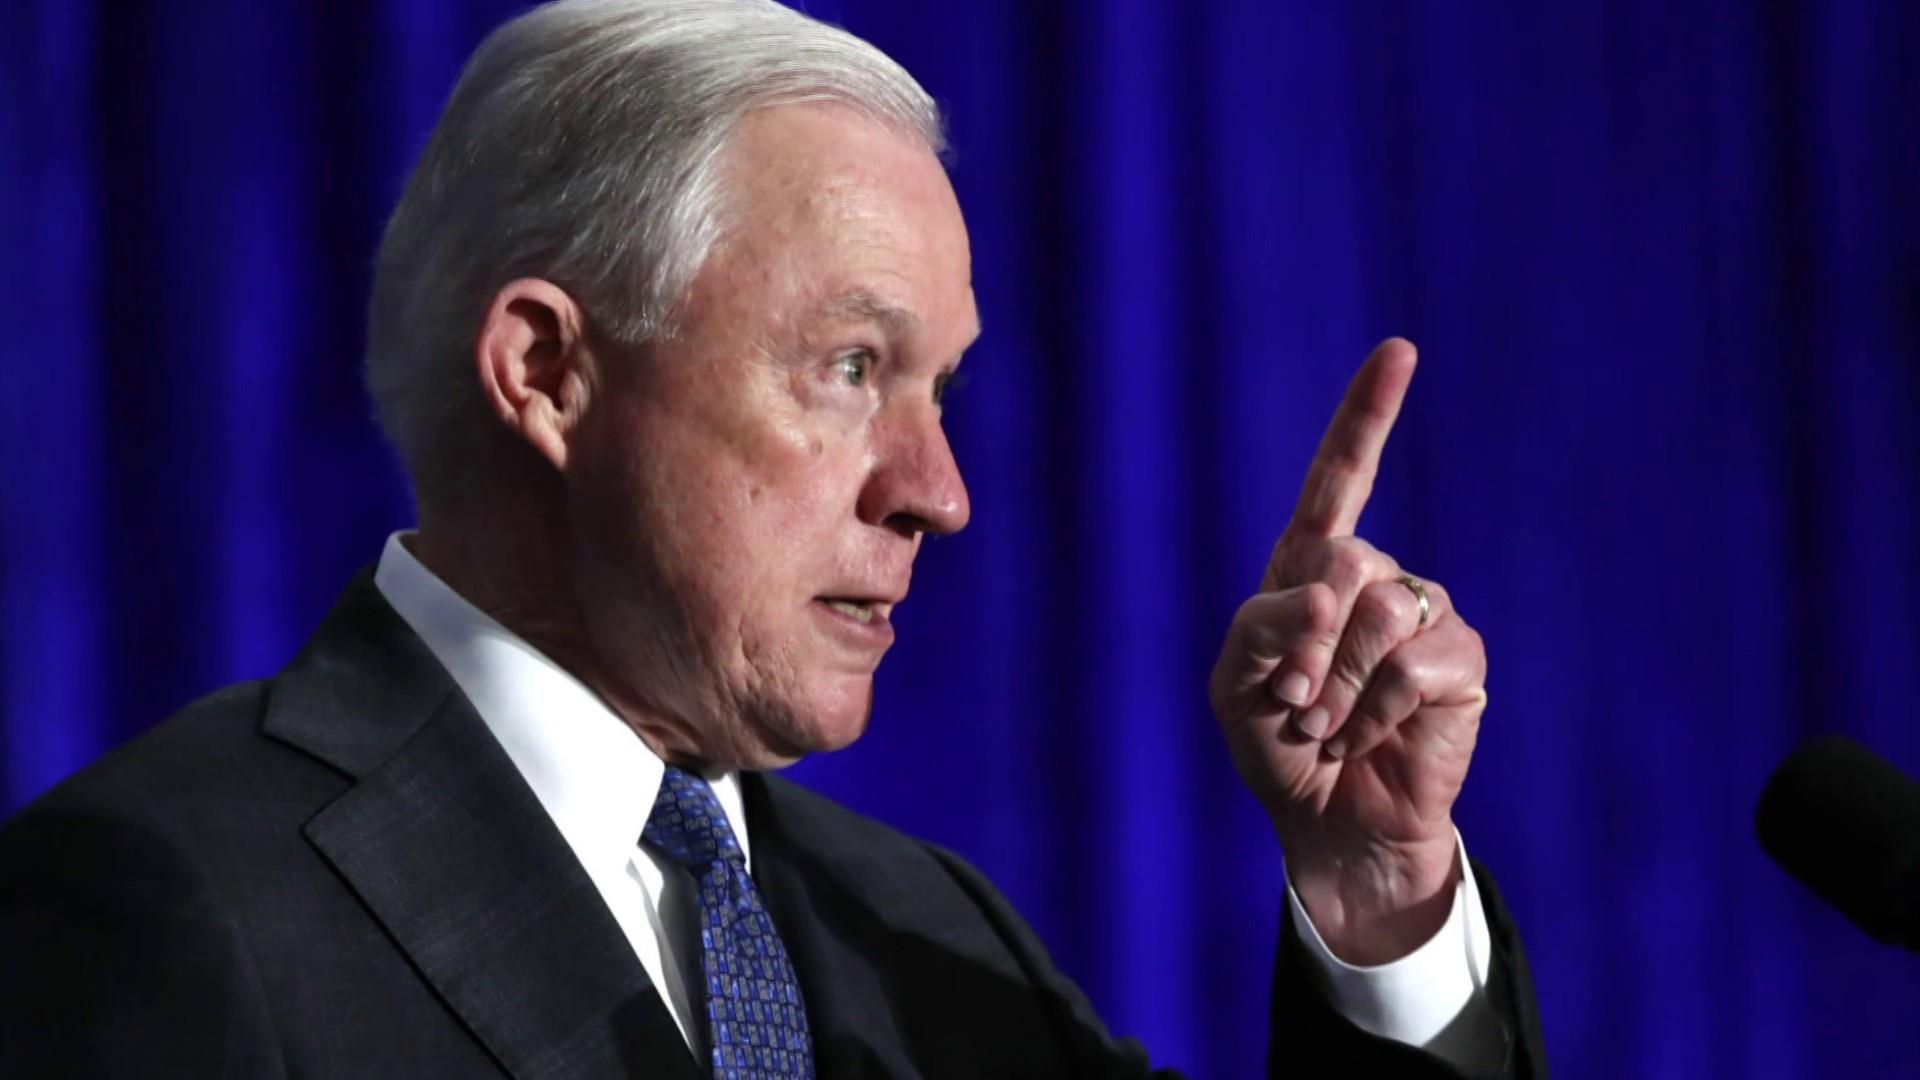 Trump claims Jeff Sessions not 'mentally qualified' to be AG as feud escalates